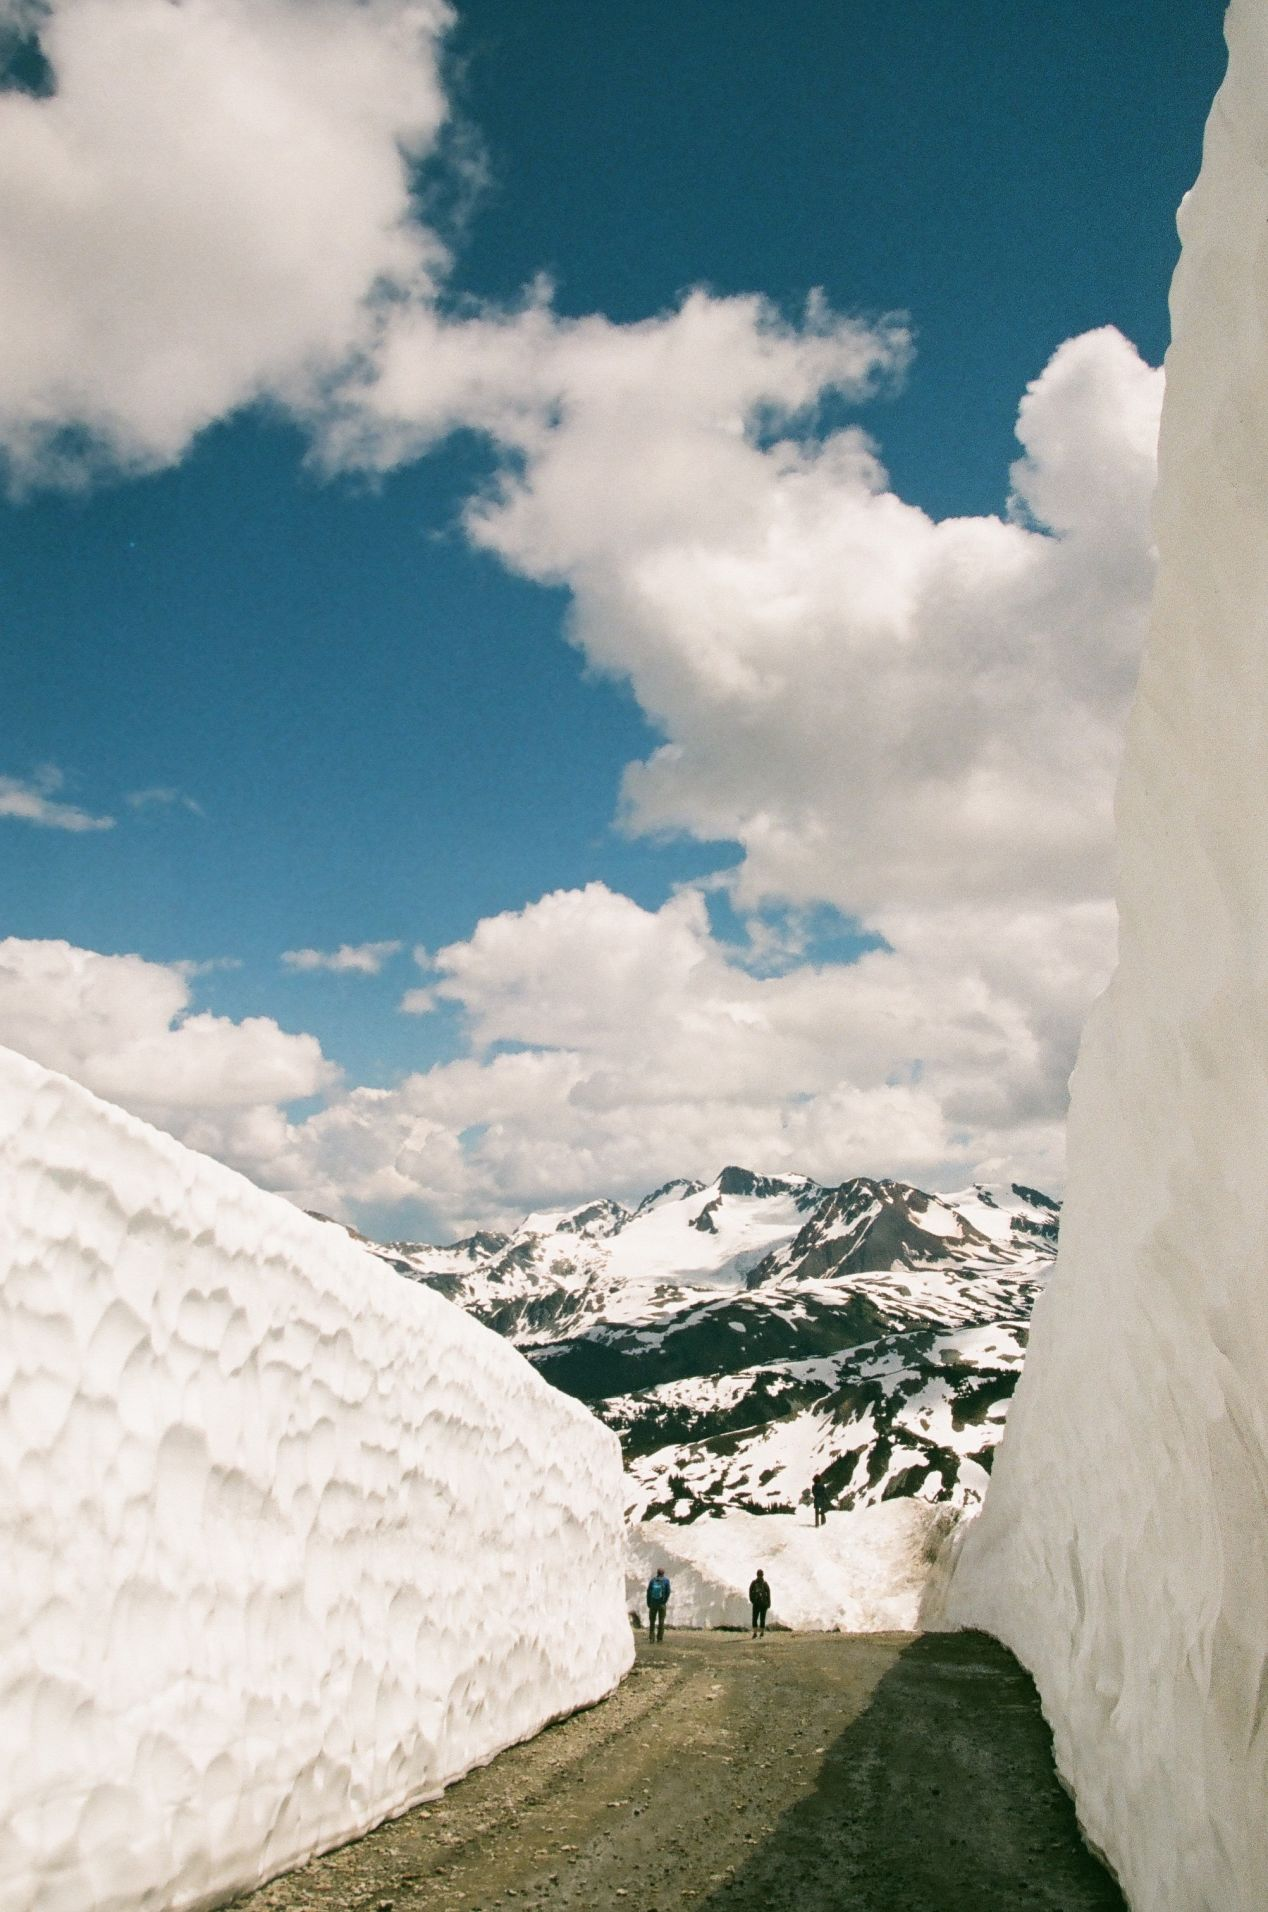 Even during the summer months, Whistler is abundant with snow.